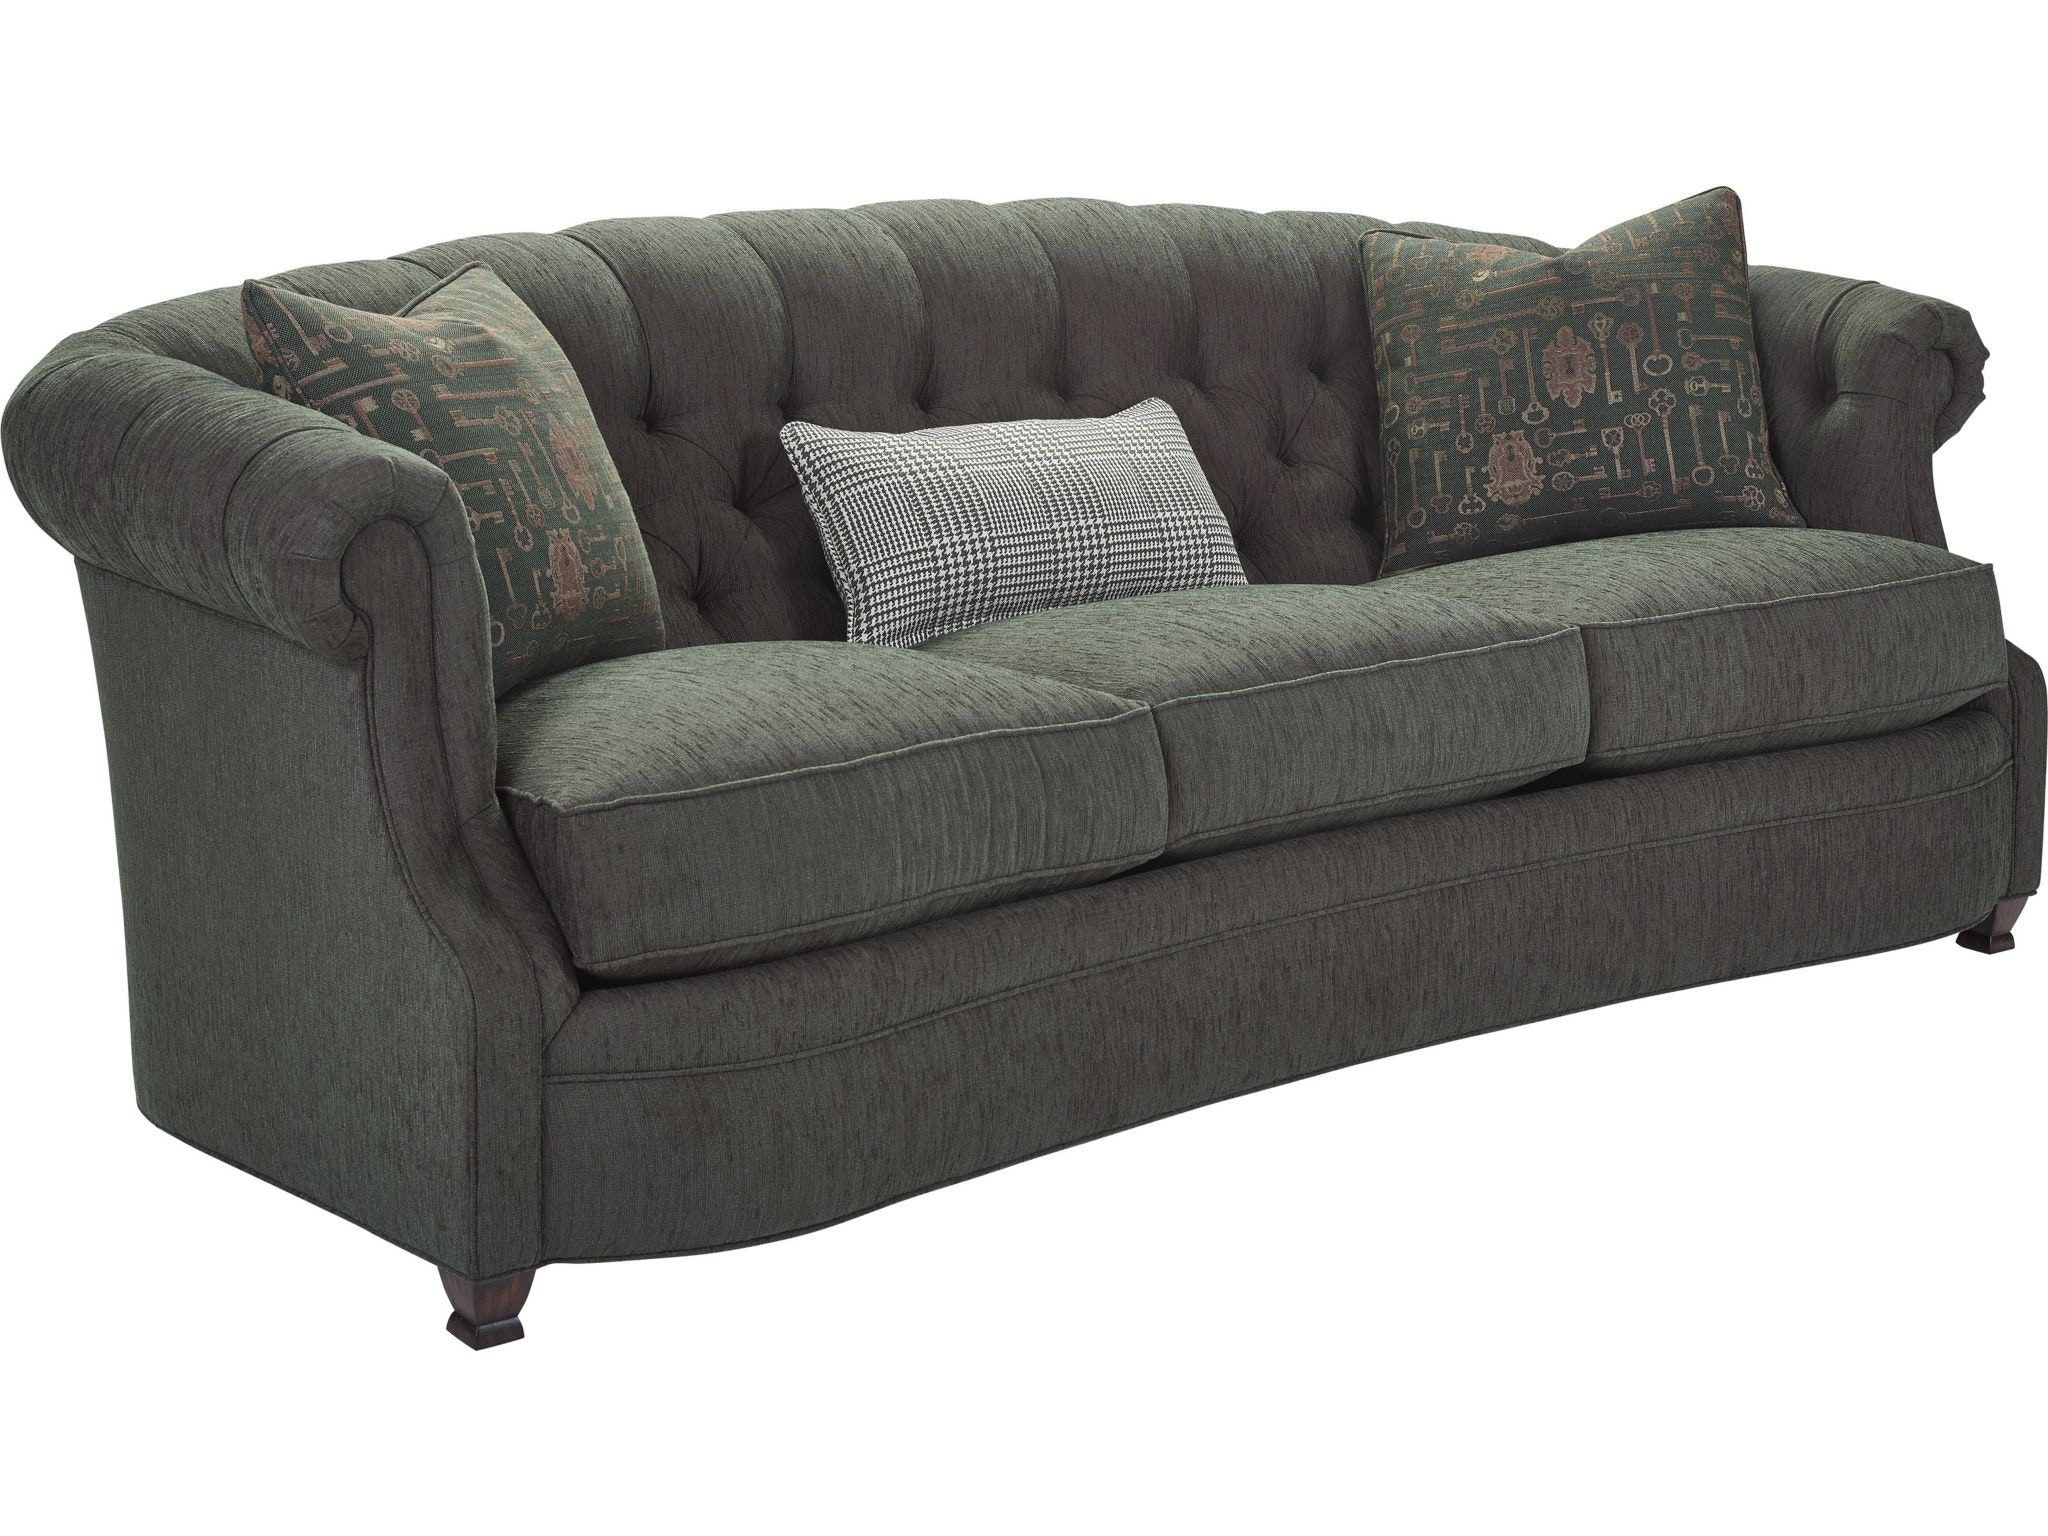 Thomasville Chevis Sofa 2531 11